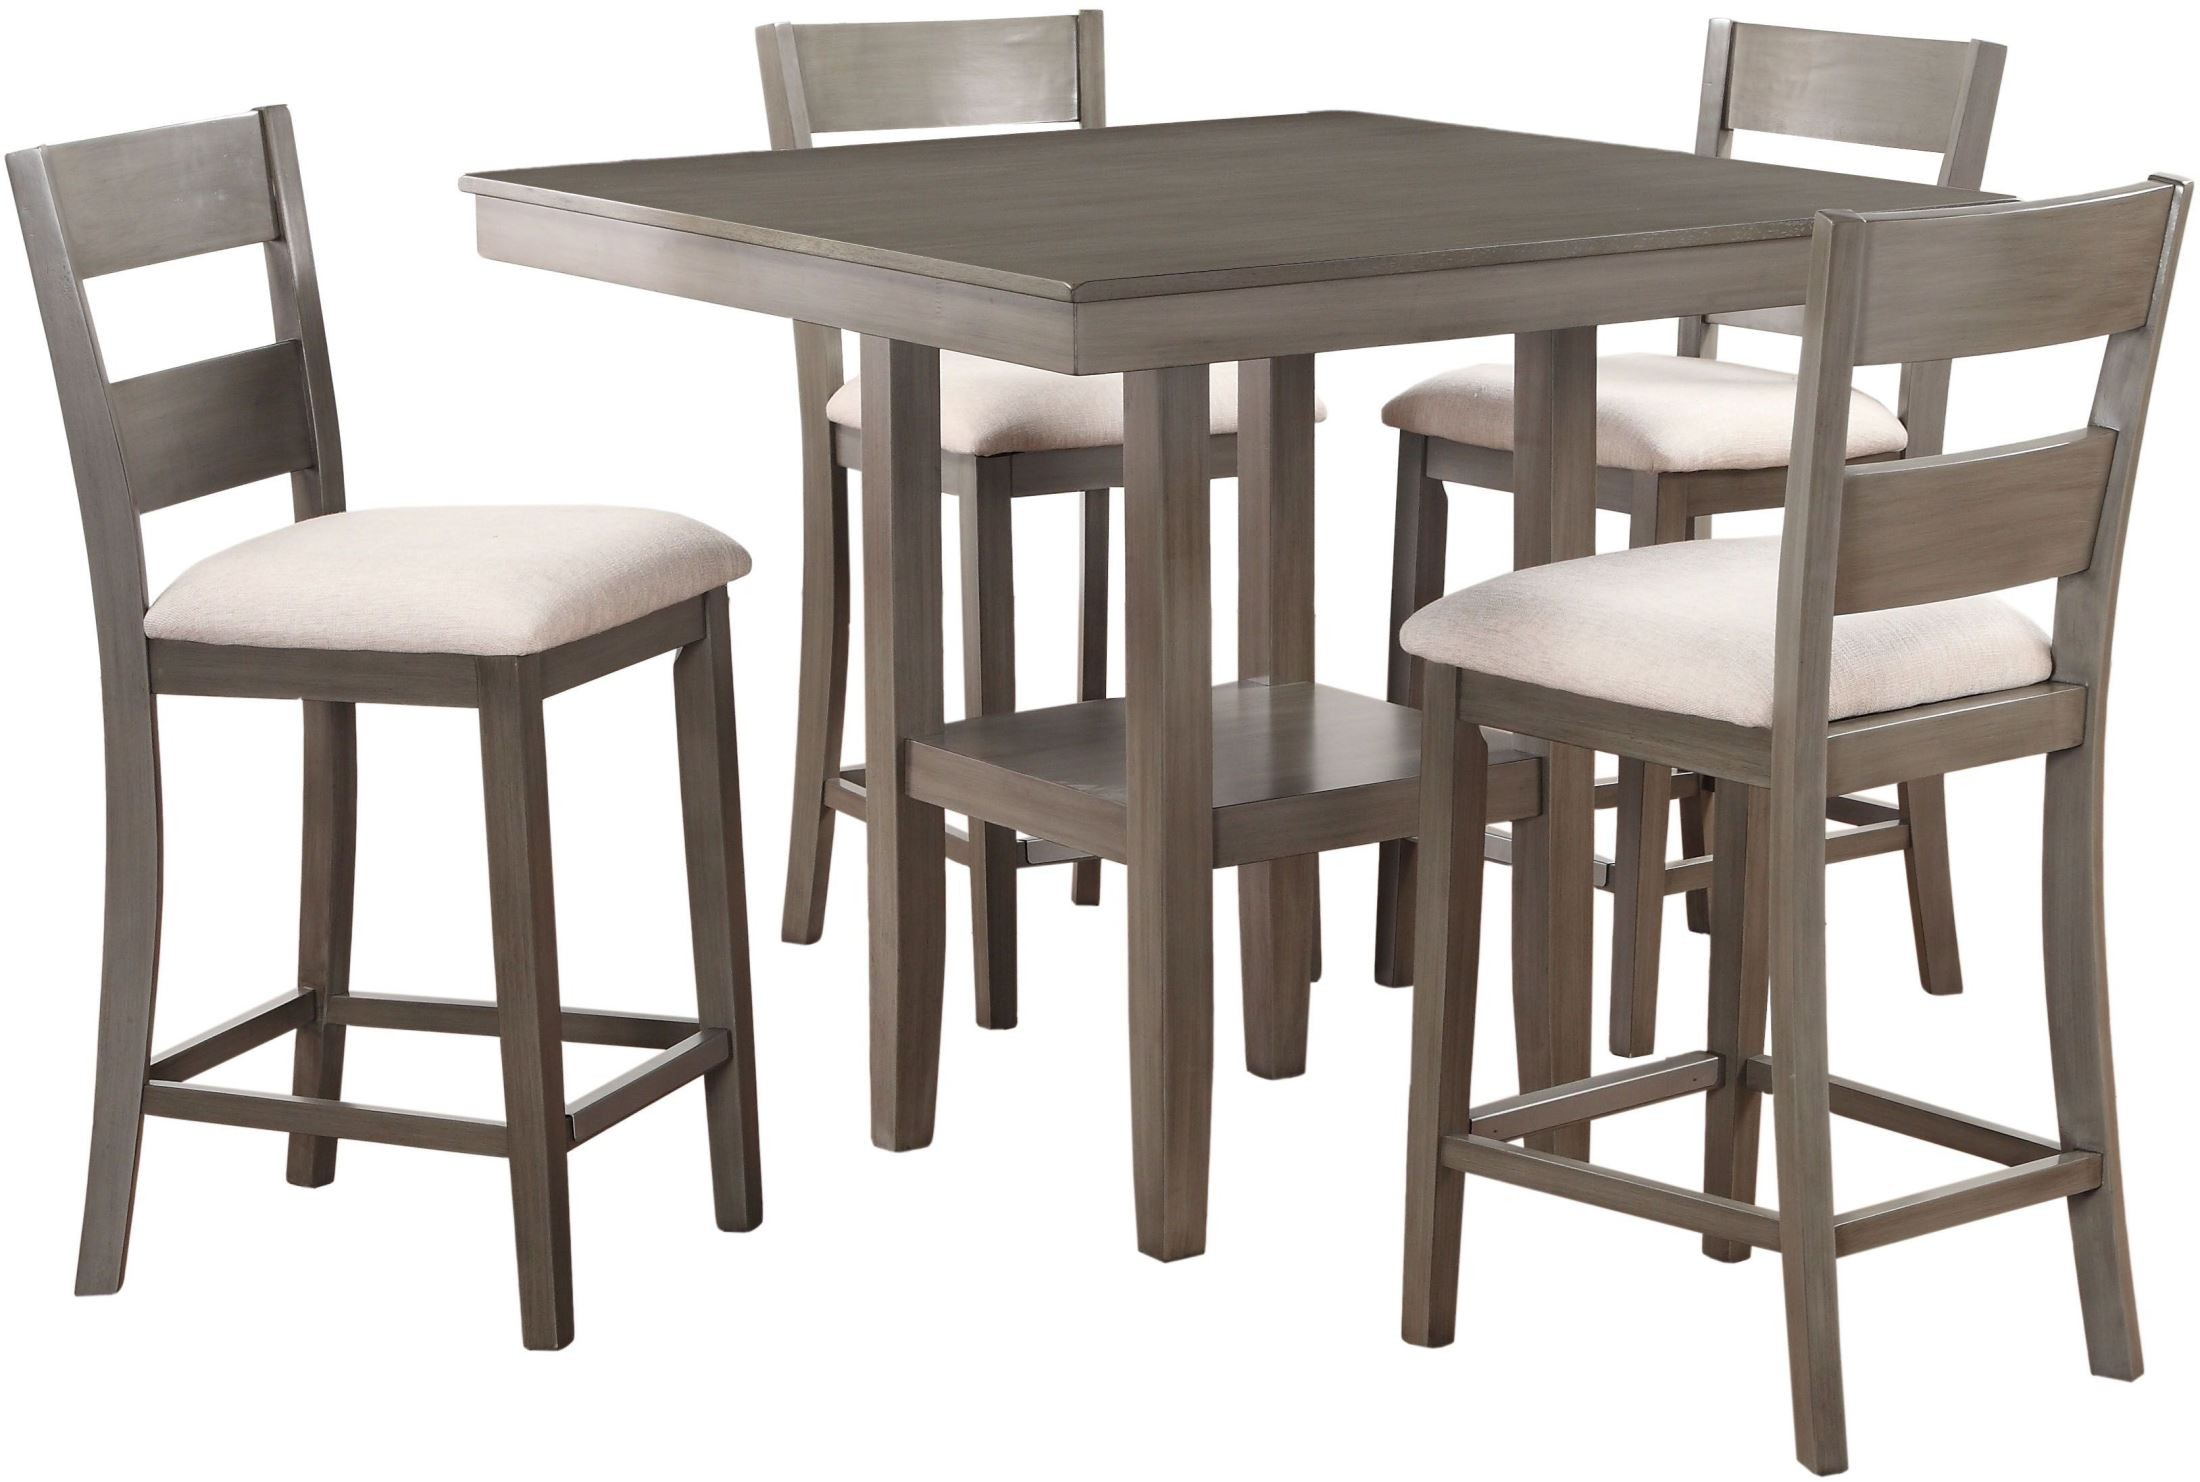 Loft Weathered Grey 5 Piece Counter Height Dining Room Set  : 13100loft from colemanfurniture.com size 2200 x 1482 jpeg 313kB